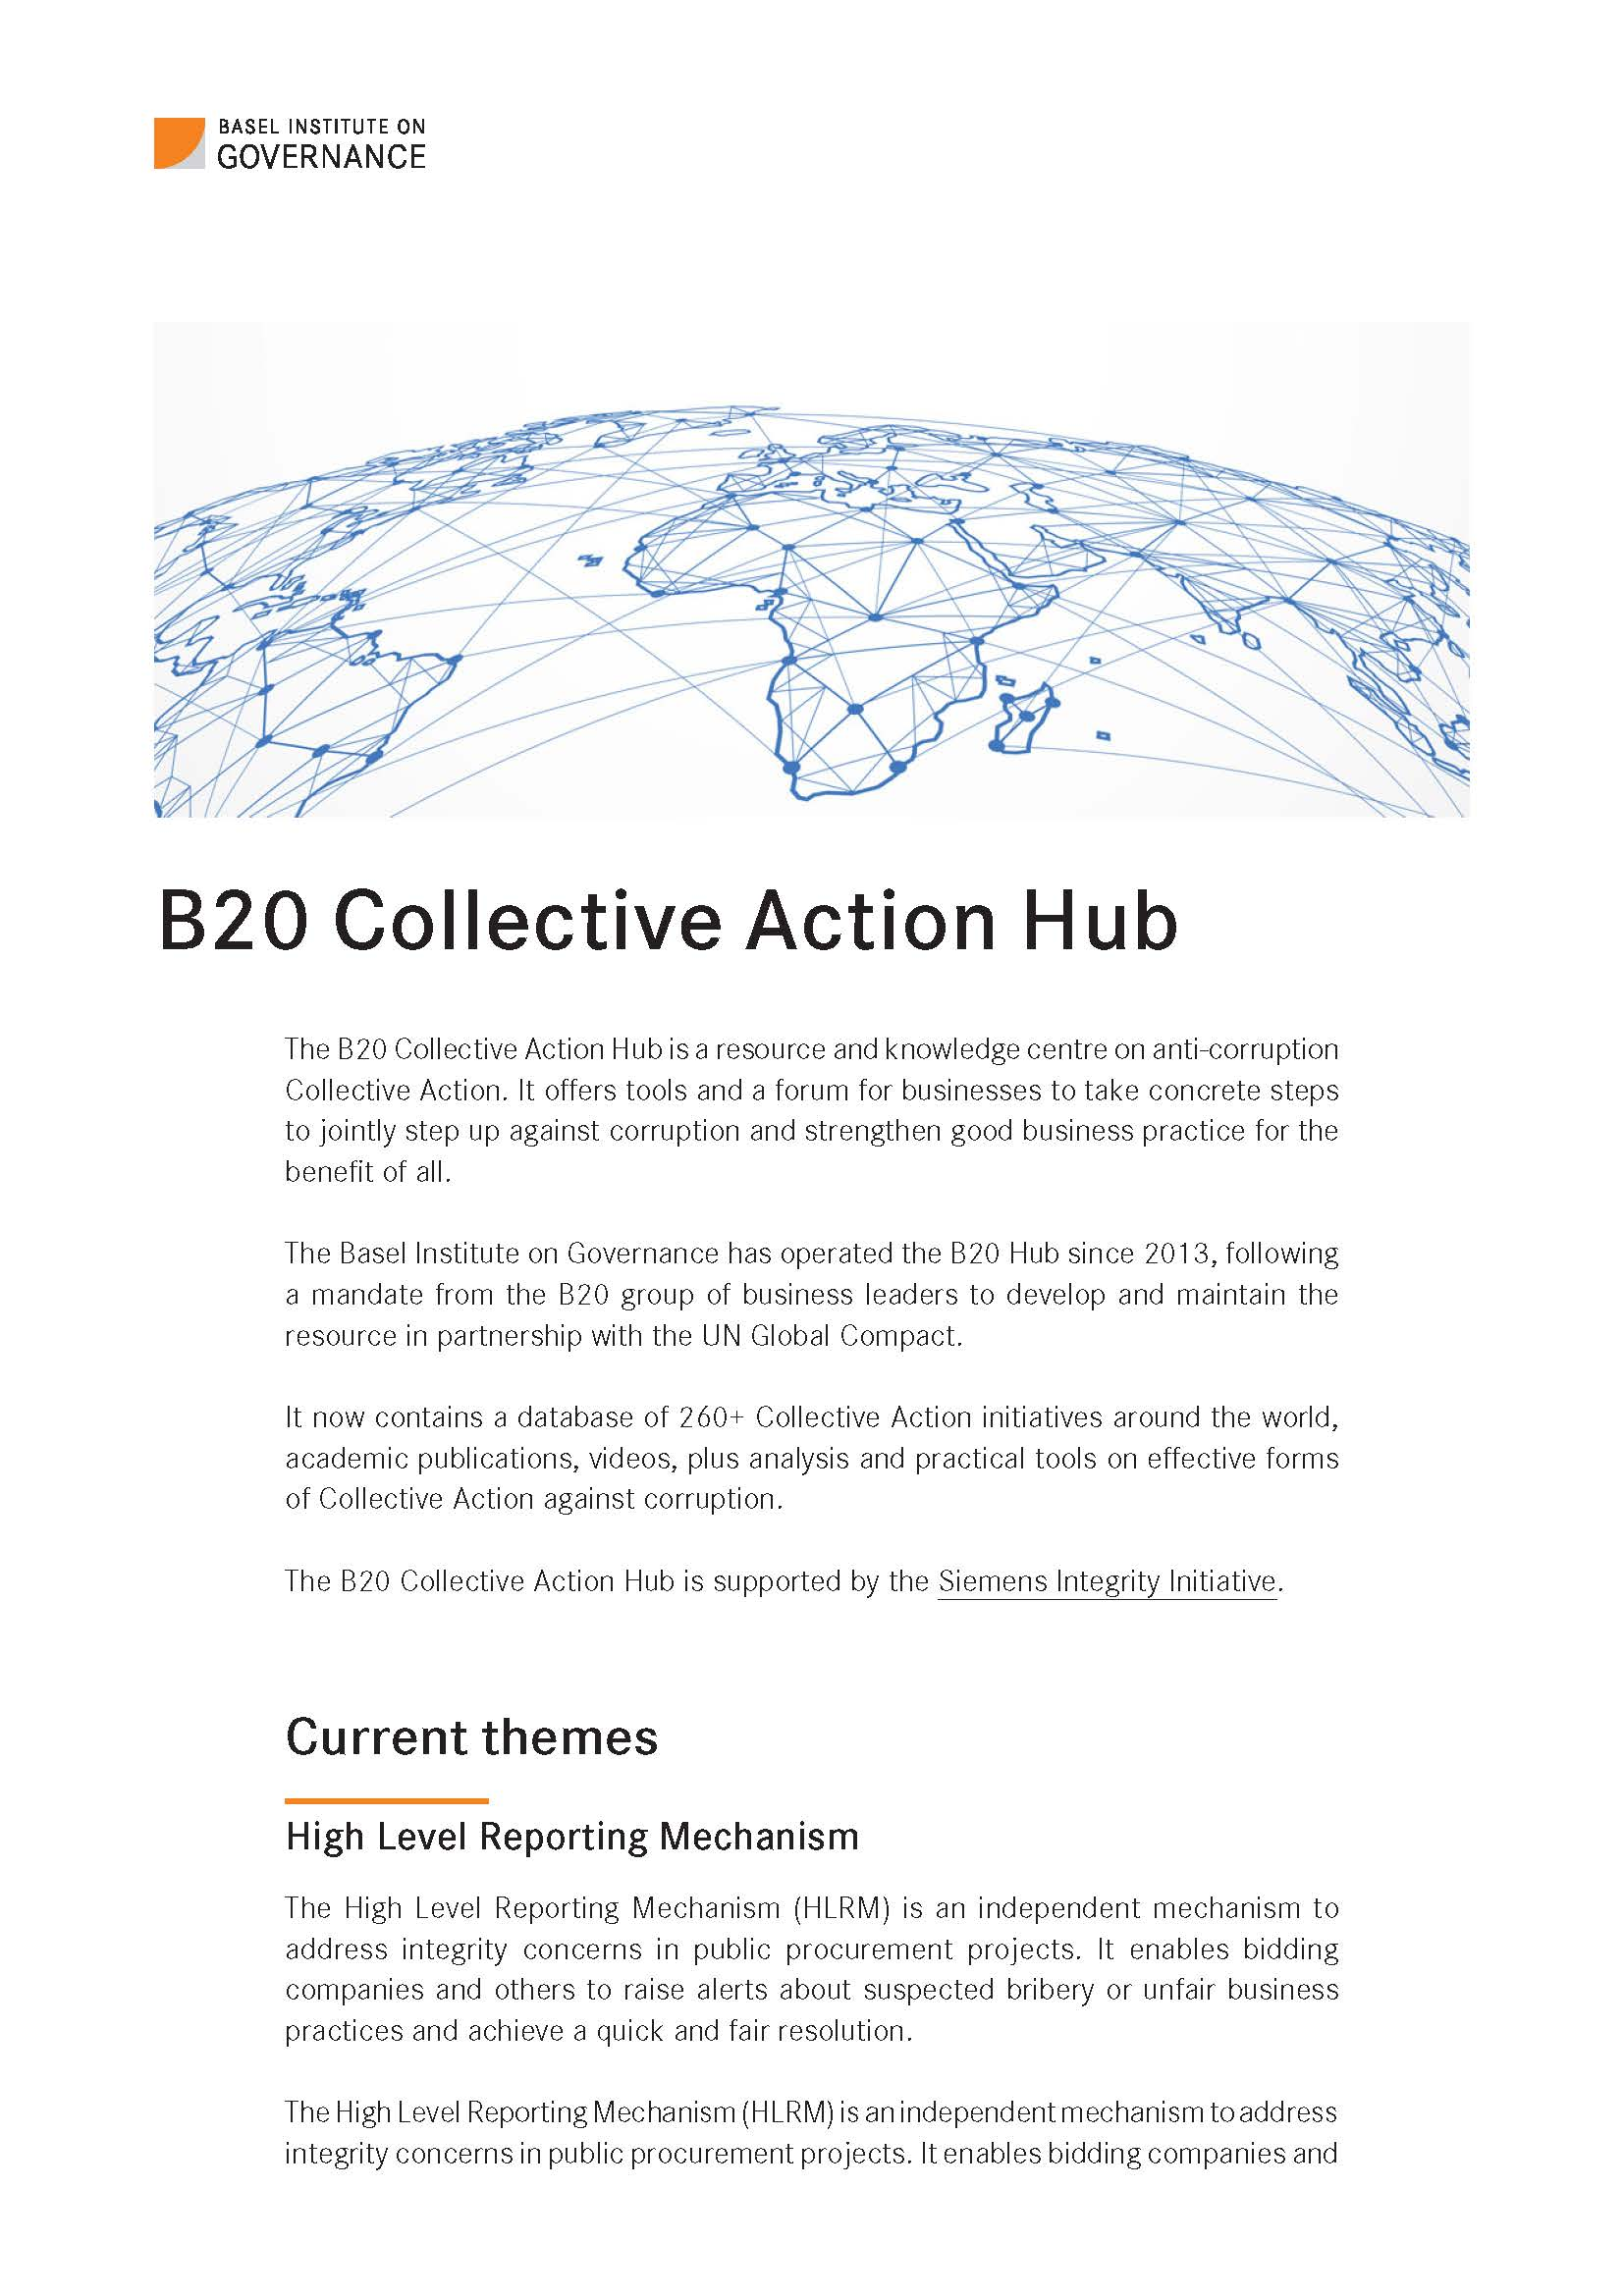 B20 Collective Action Hub flyer